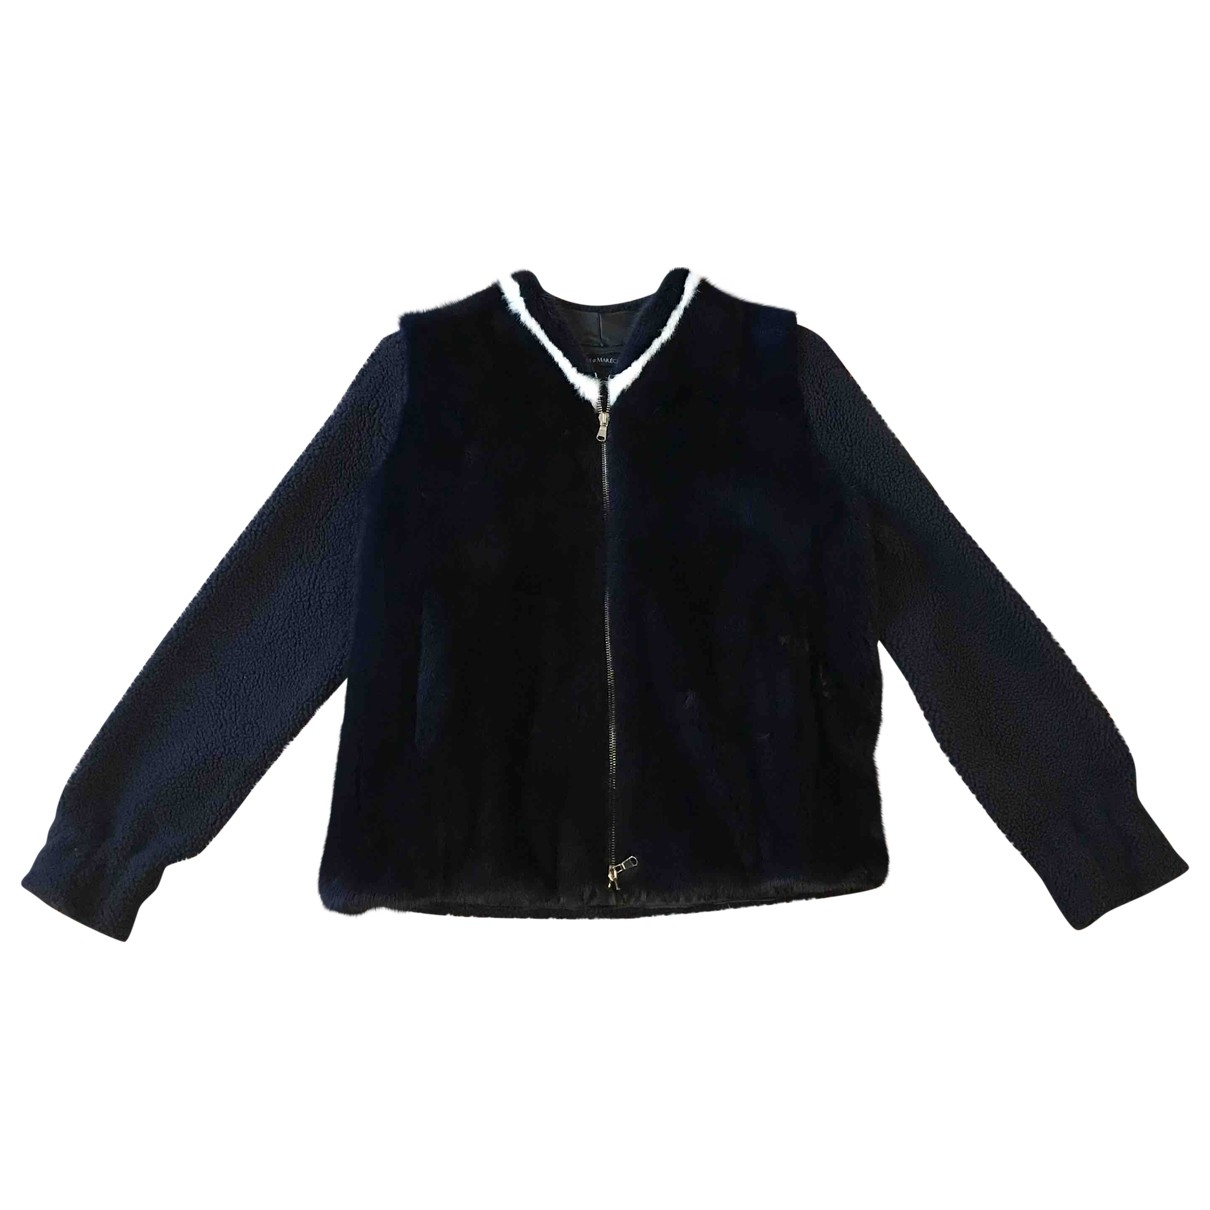 Ines Et Marechal \N Blue Mink jacket for Women 36 FR